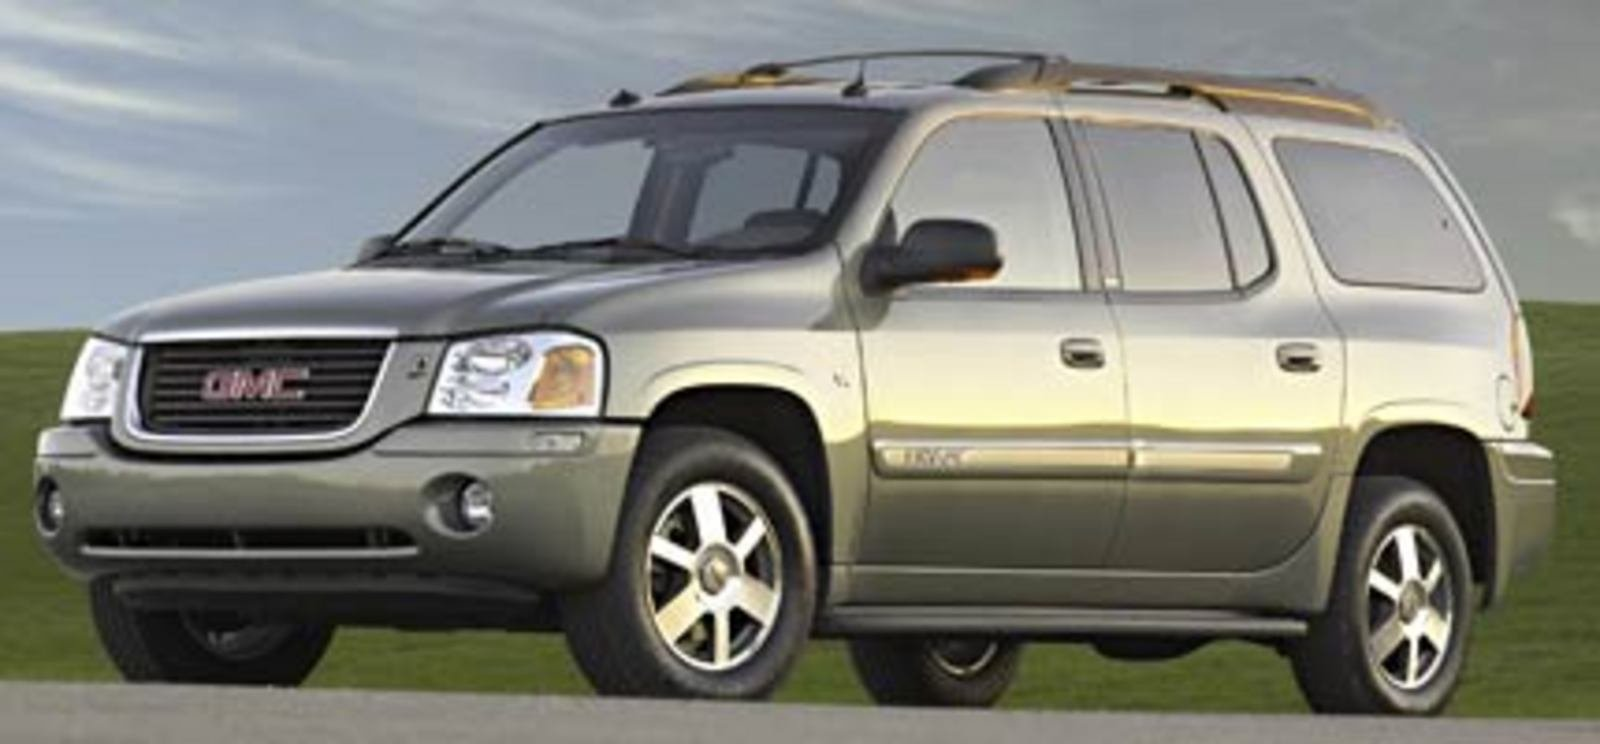 2002 GMC Envoy Review - Top Speed